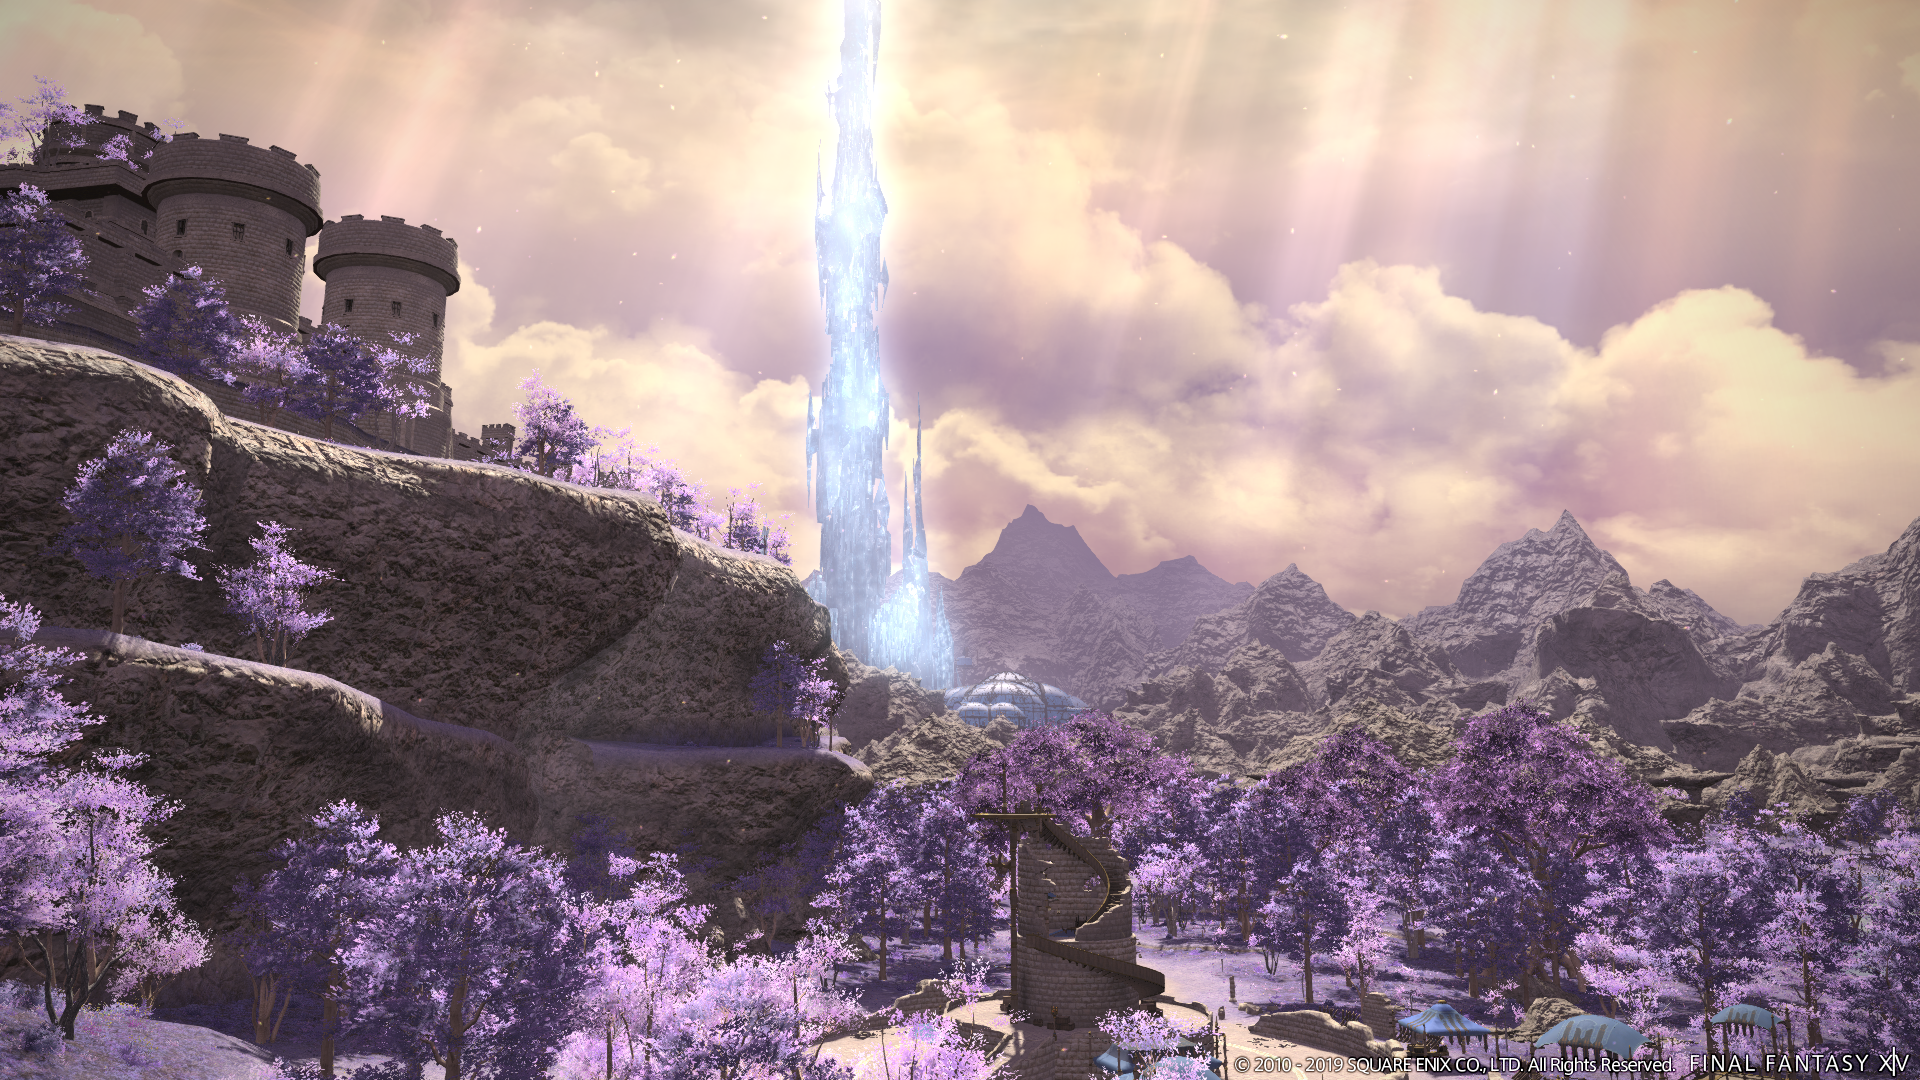 Final Fantasy XIV - Grand-Lac